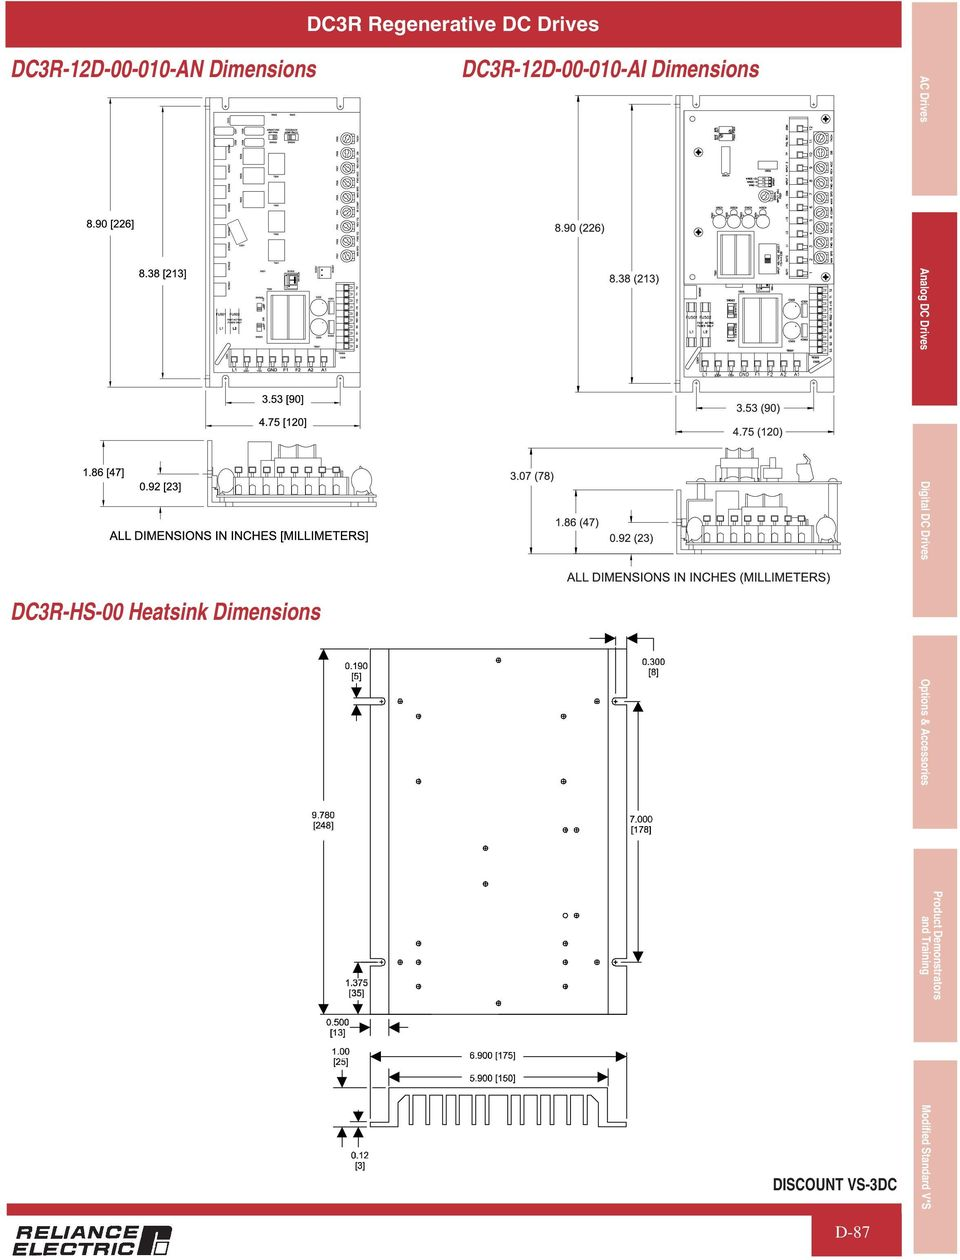 DC3R-12D-00-010-AI Dimensions AC Drives Analog DC Drives